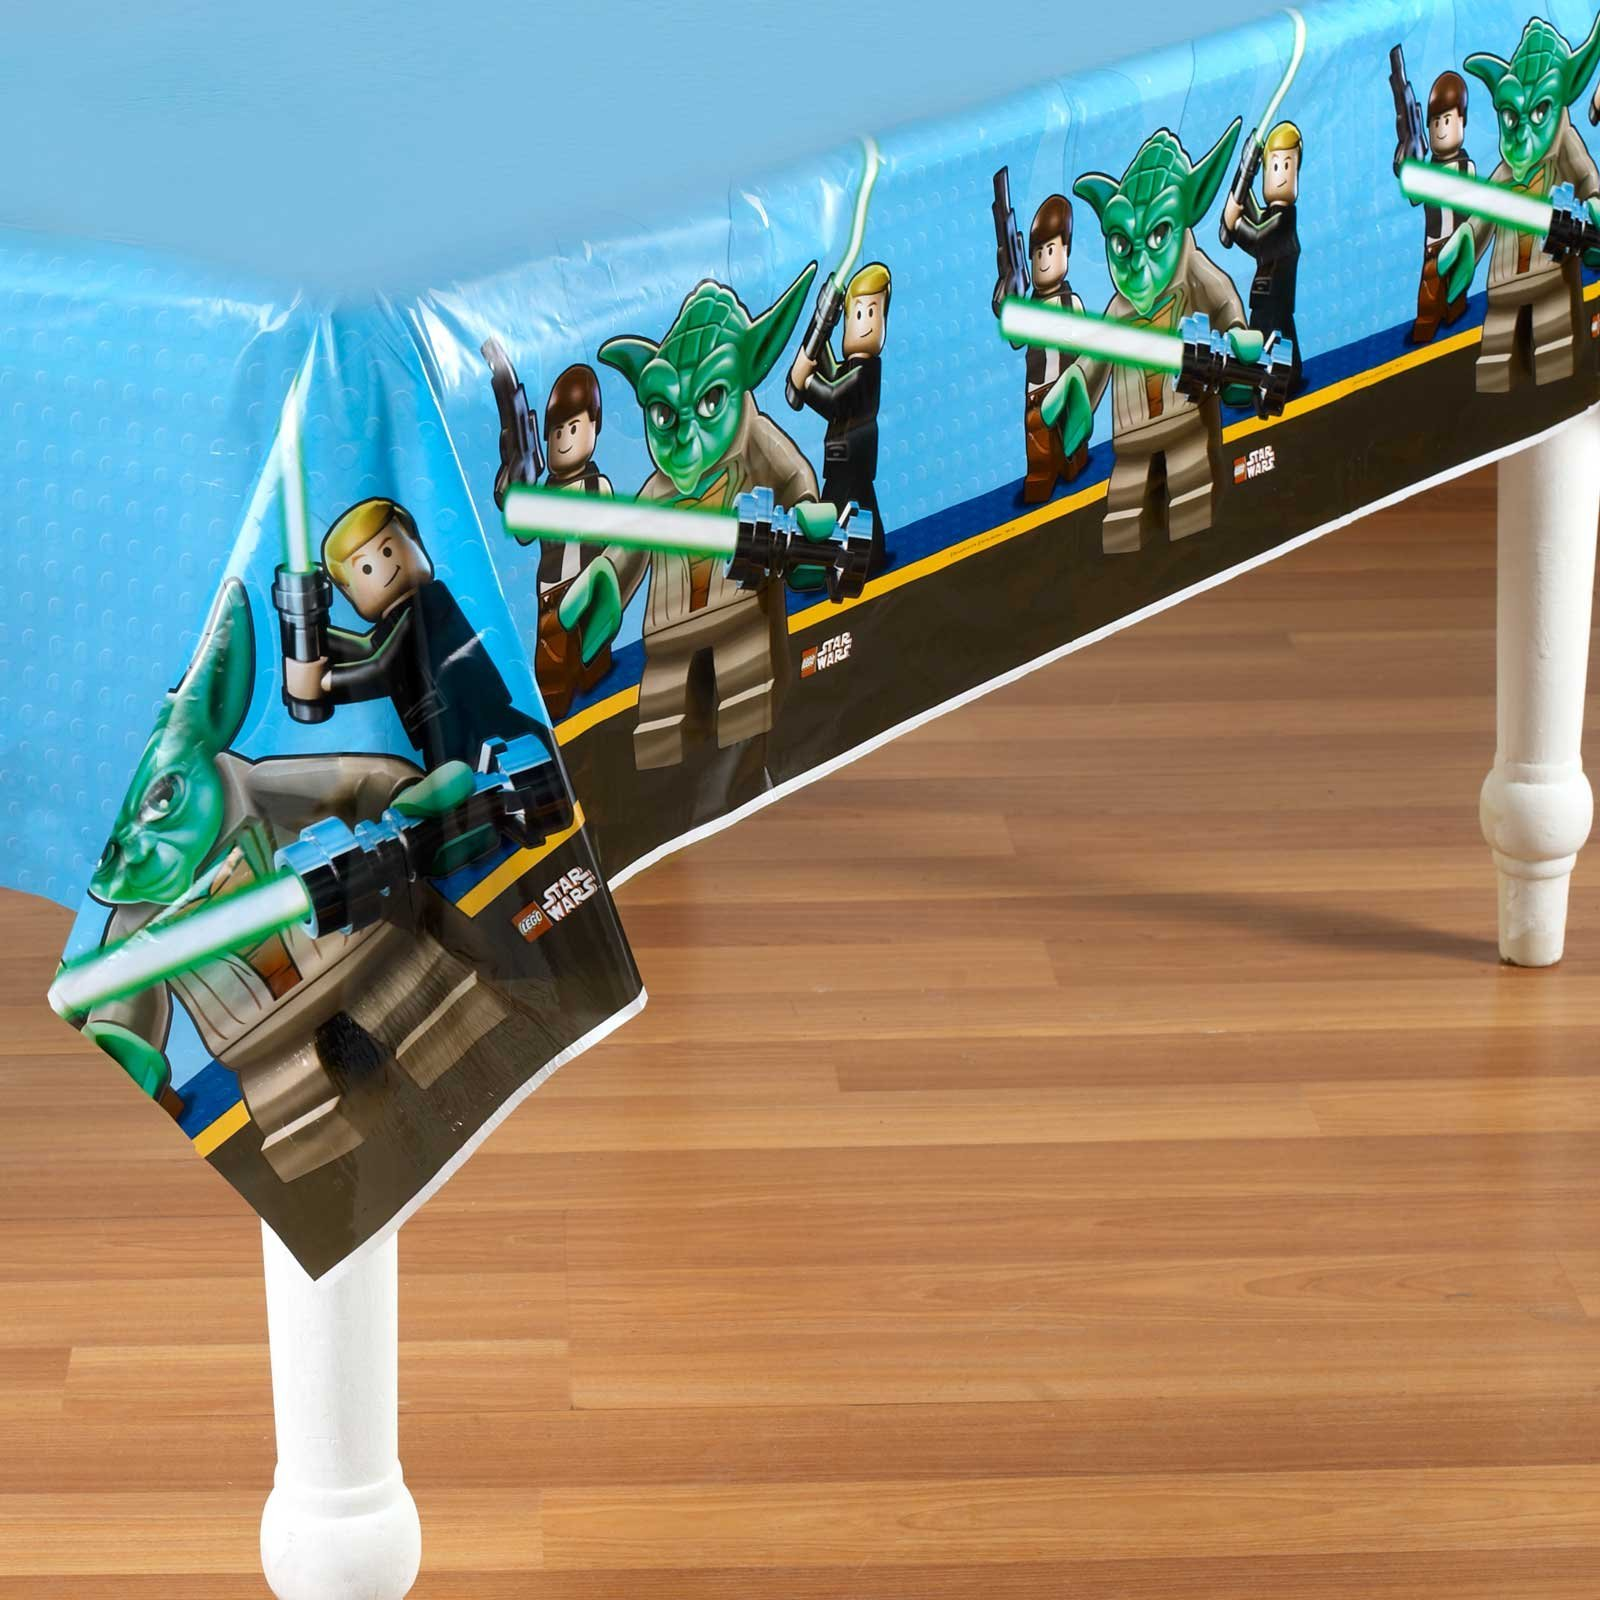 LEGO Star Wars Plastic Tablecover Party Accessory by Hallmark (Image #1)